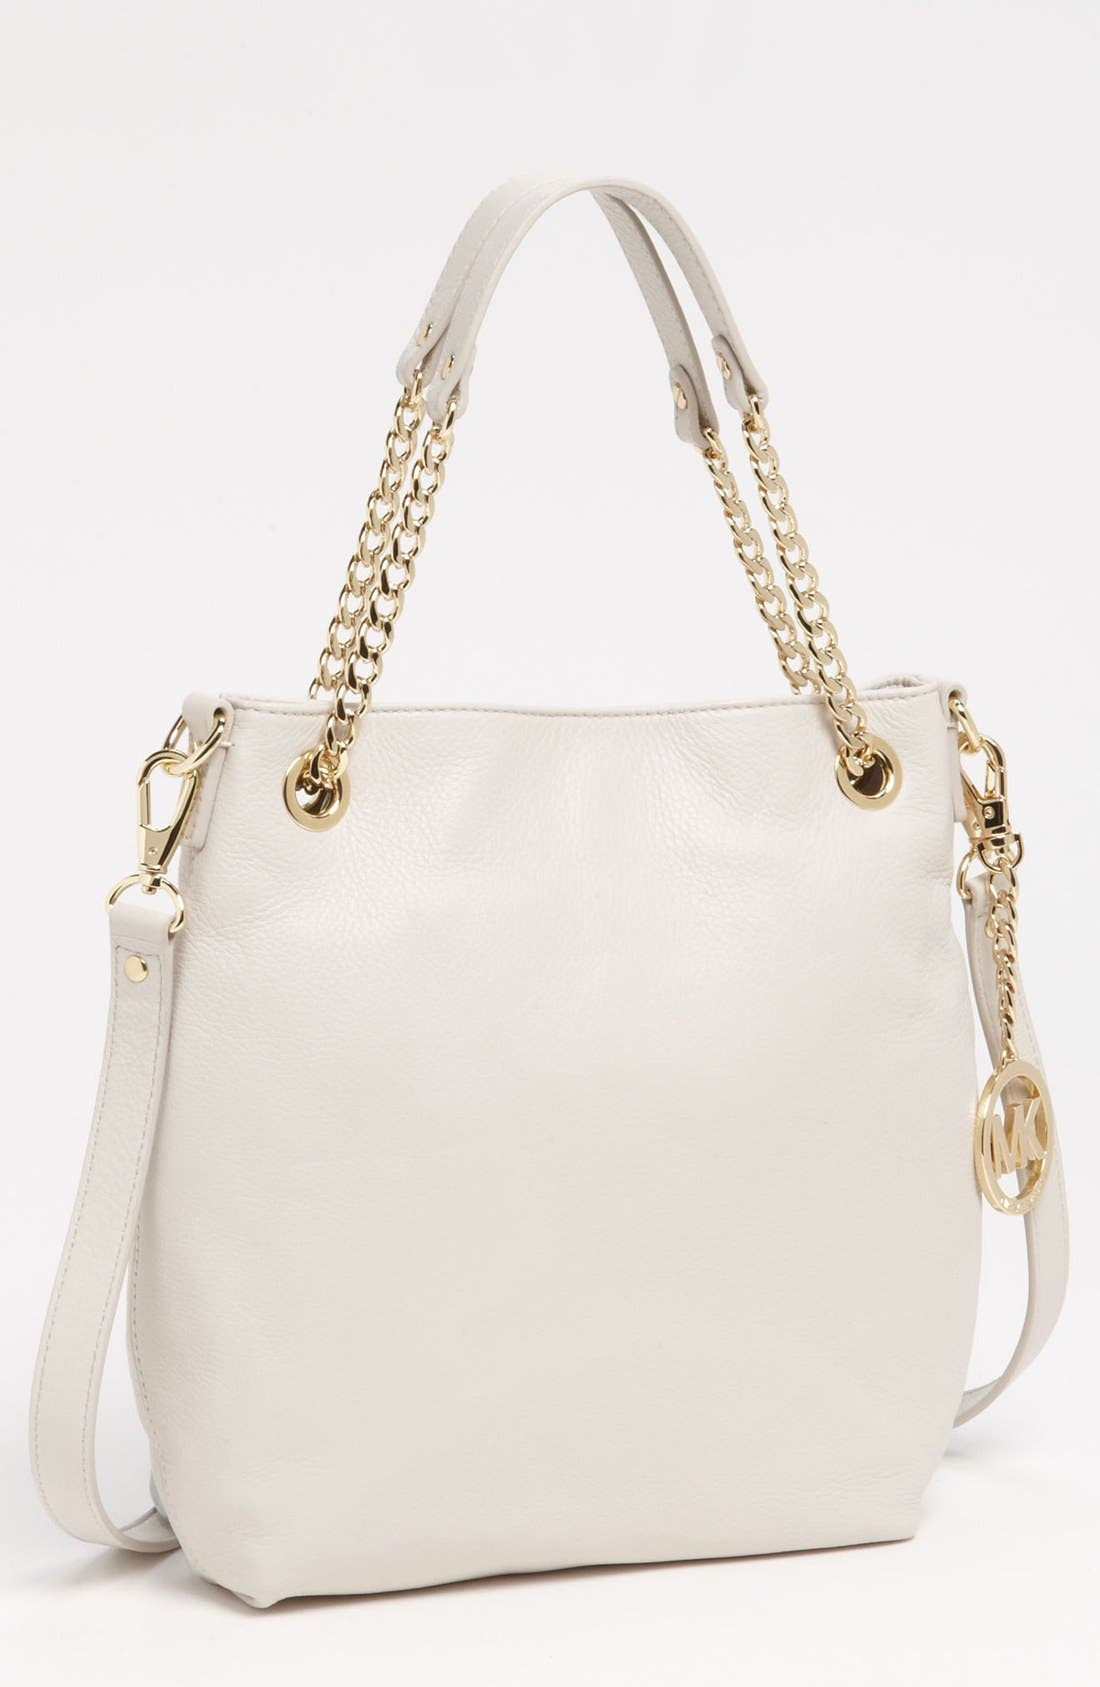 Alternate Image 1 Selected - MICHAEL Michael Kors 'Jet Set - Medium' Chain Shoulder Tote